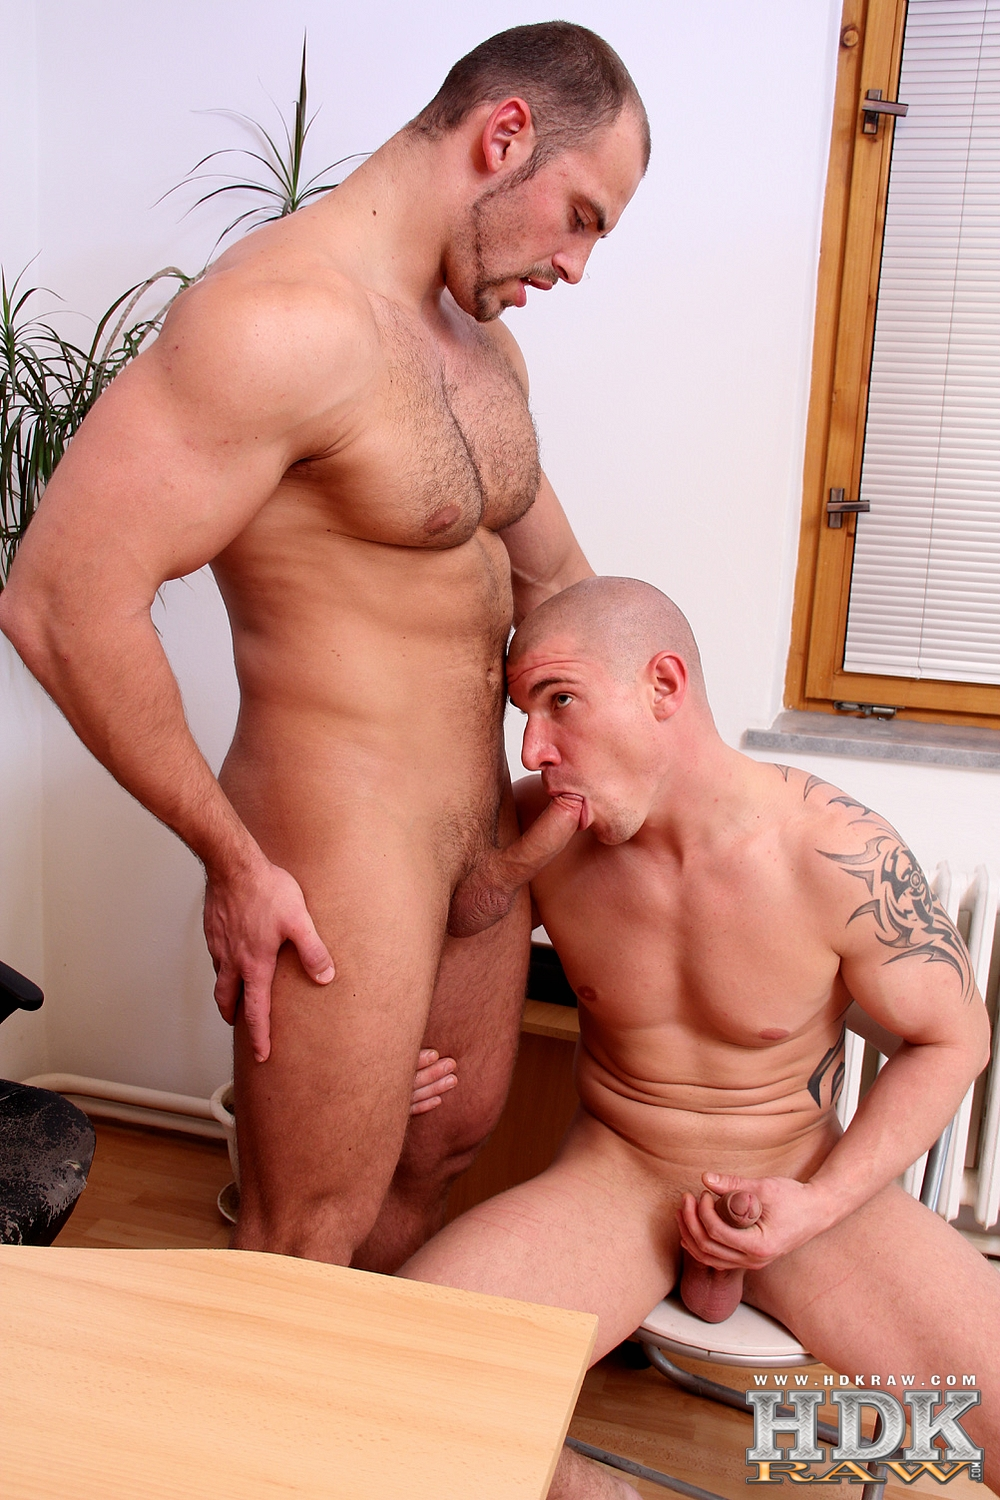 HDK-Raw-Creamin-Fit-Fuckers-Tomm-Max-Born-Muscle-Bareback-Amateur-Gay-Porn-09 Built Hairy Muscle Bear Fucks His Smooth Muscle Buddy Raw